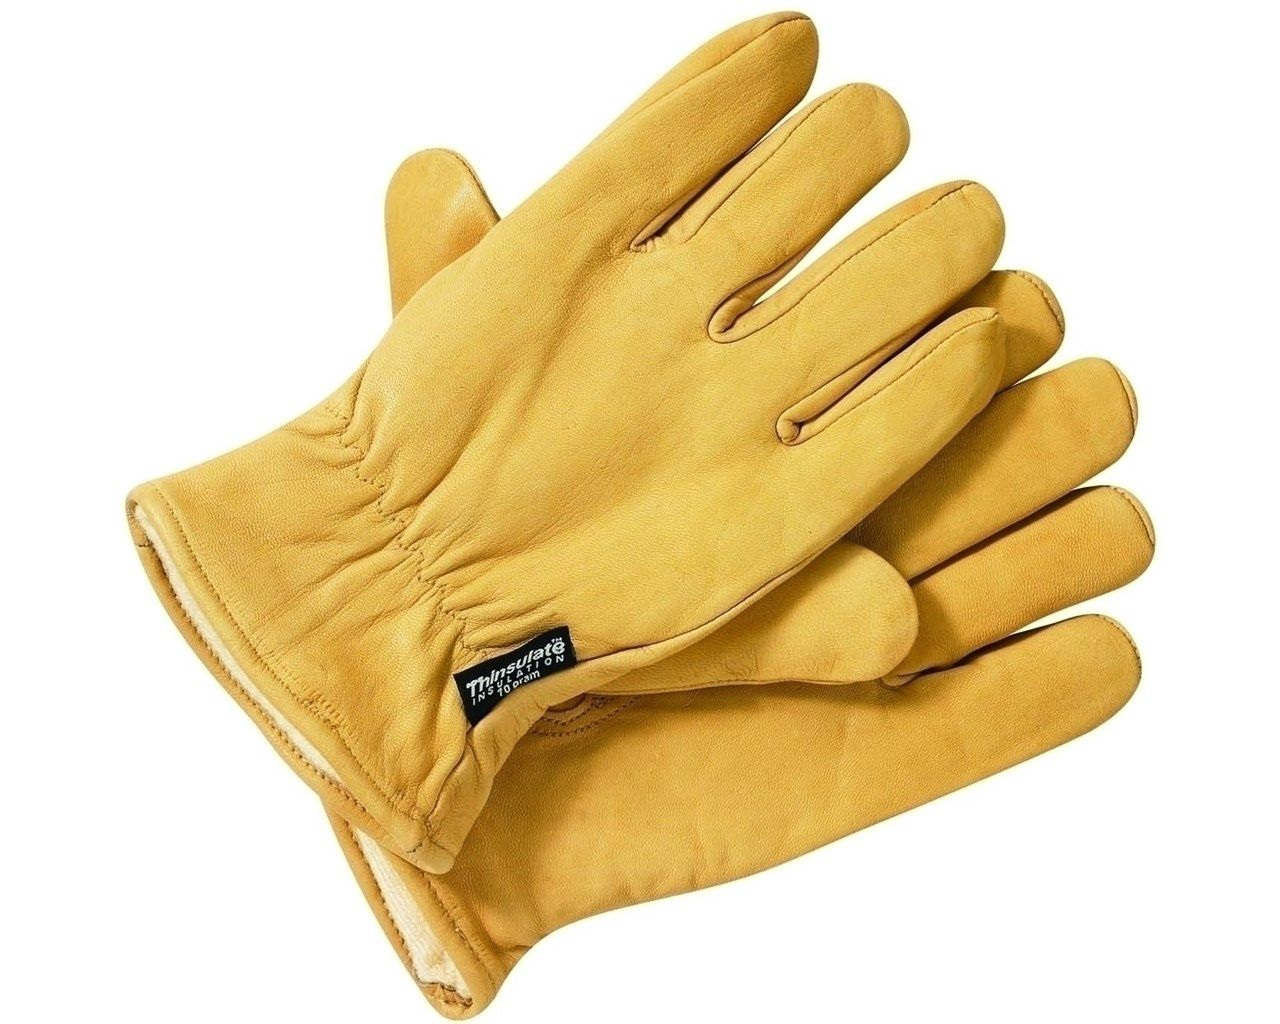 Dickies Lined Leather Work Gloves Tan Safety